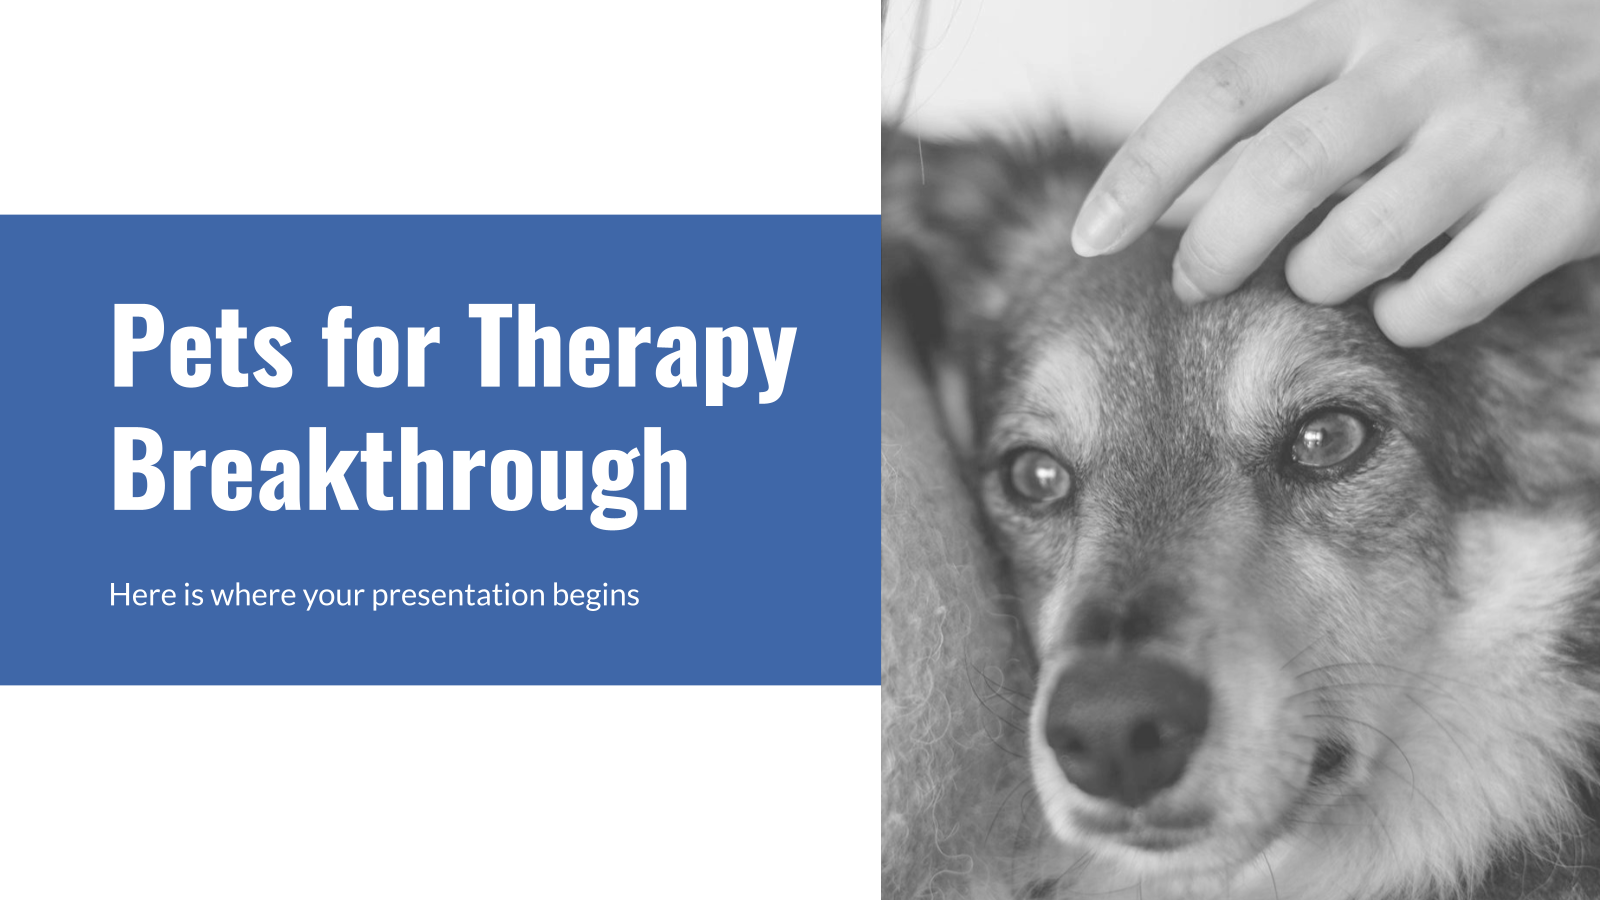 Pets for Therapy Breakthrough presentation template